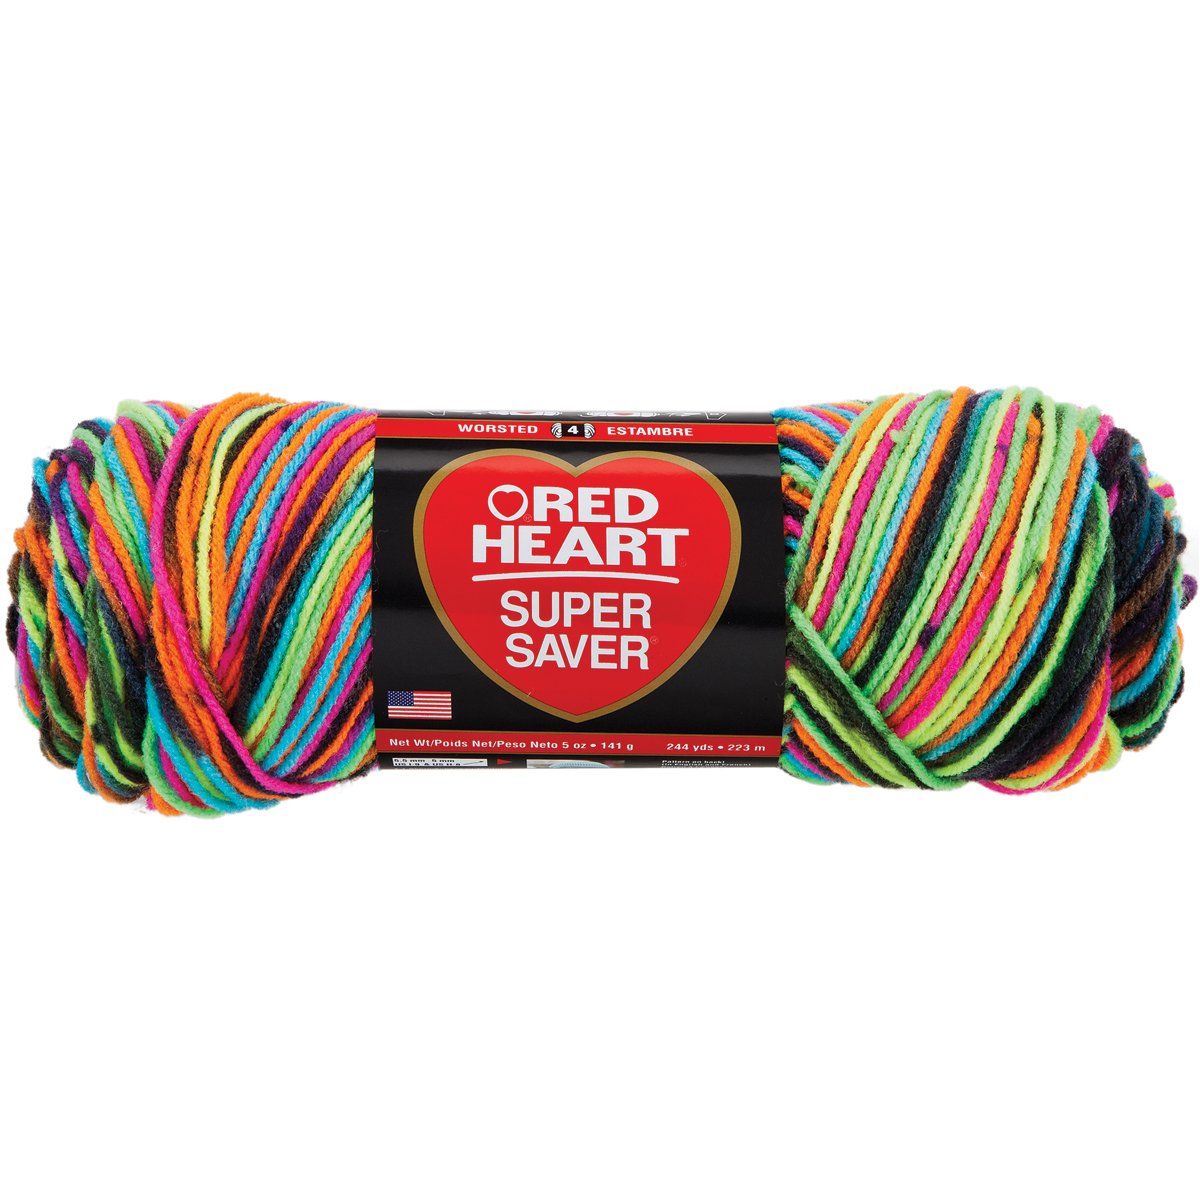 Red Heart Super Saver Yarn Blacklight